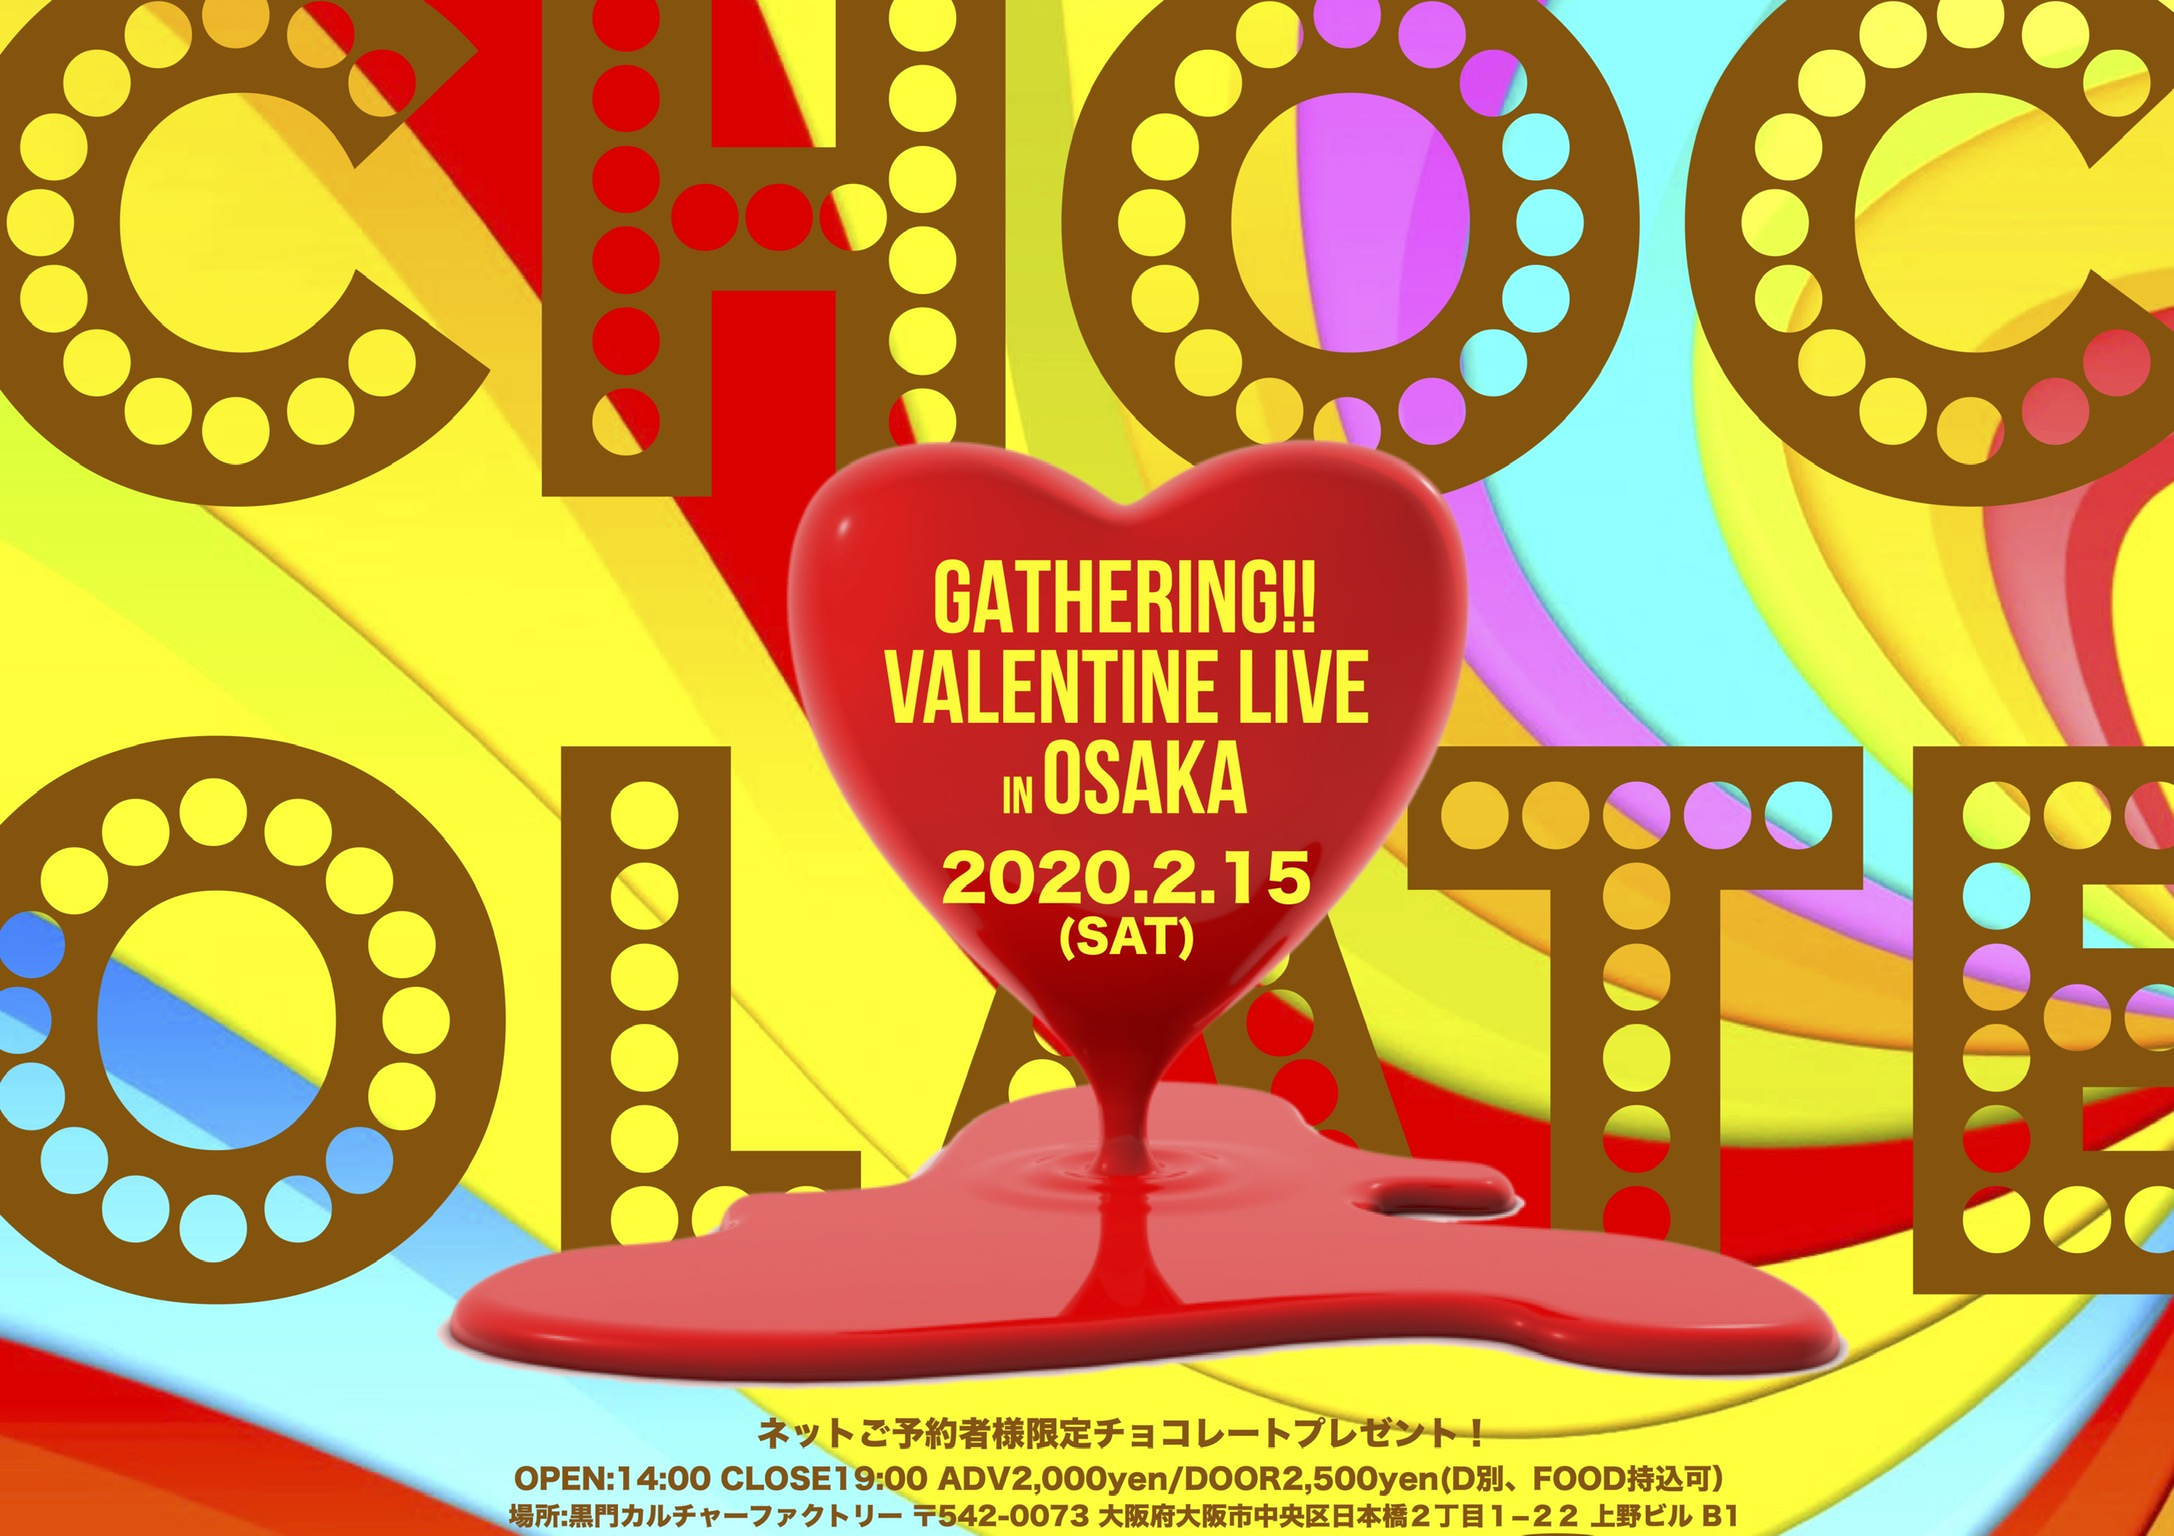 GATHERING!! Valentine Live in OSAKA